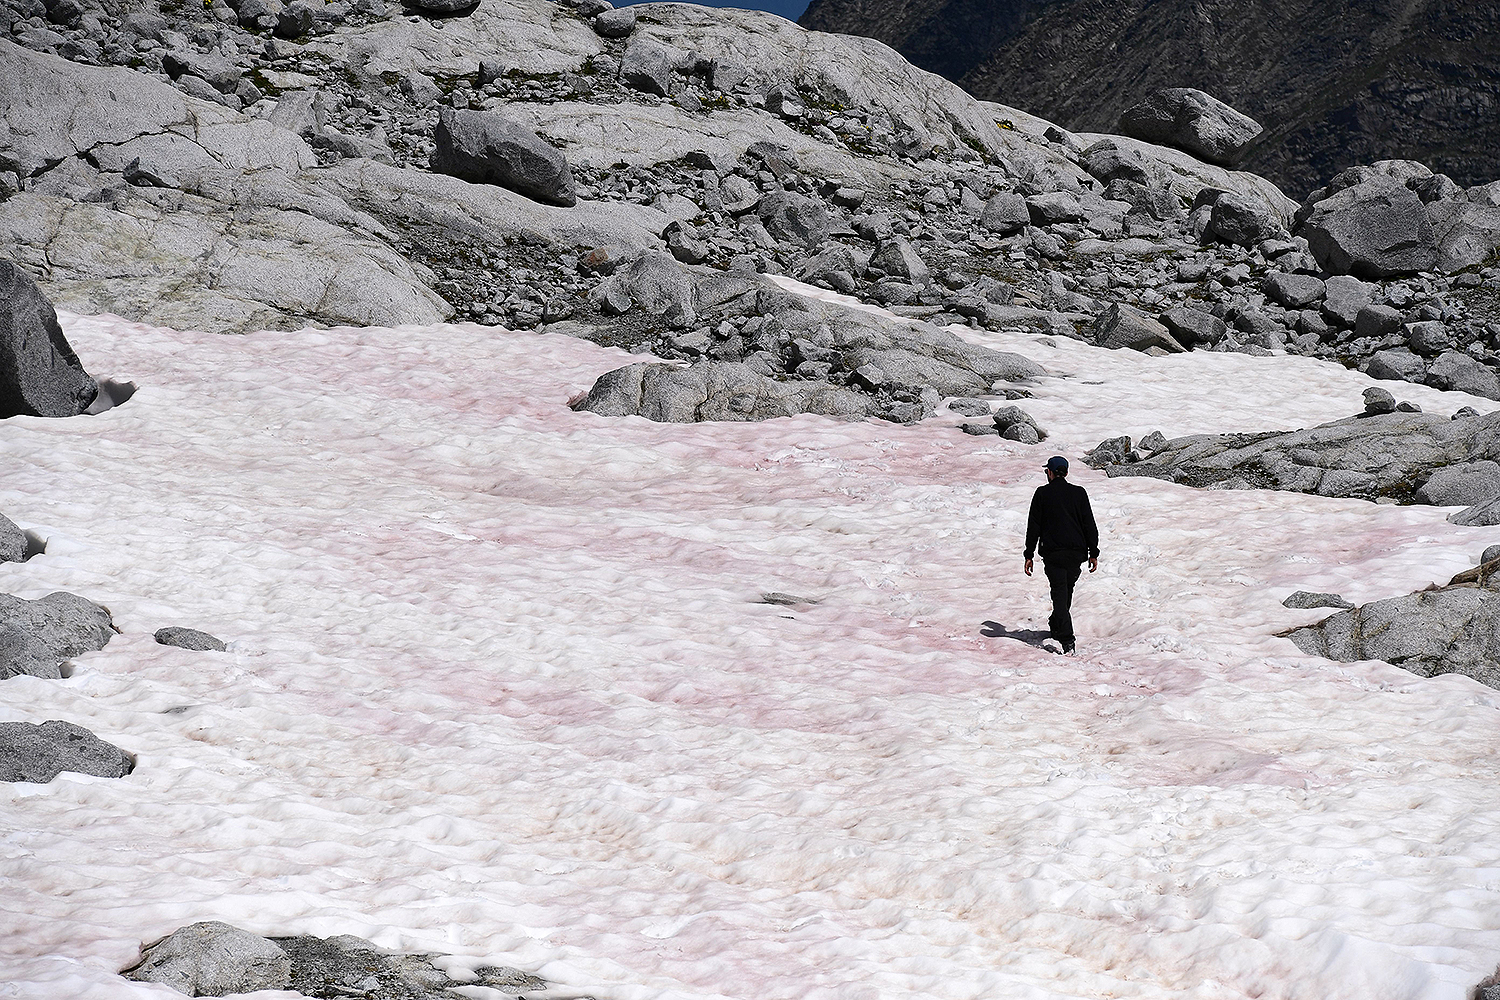 A man walks on pink-colored snow, reportedly due to the presence of algae, at the Presena glacier in the Italian Alps on July 4. MIGUEL MEDINA/AFP via Getty Images